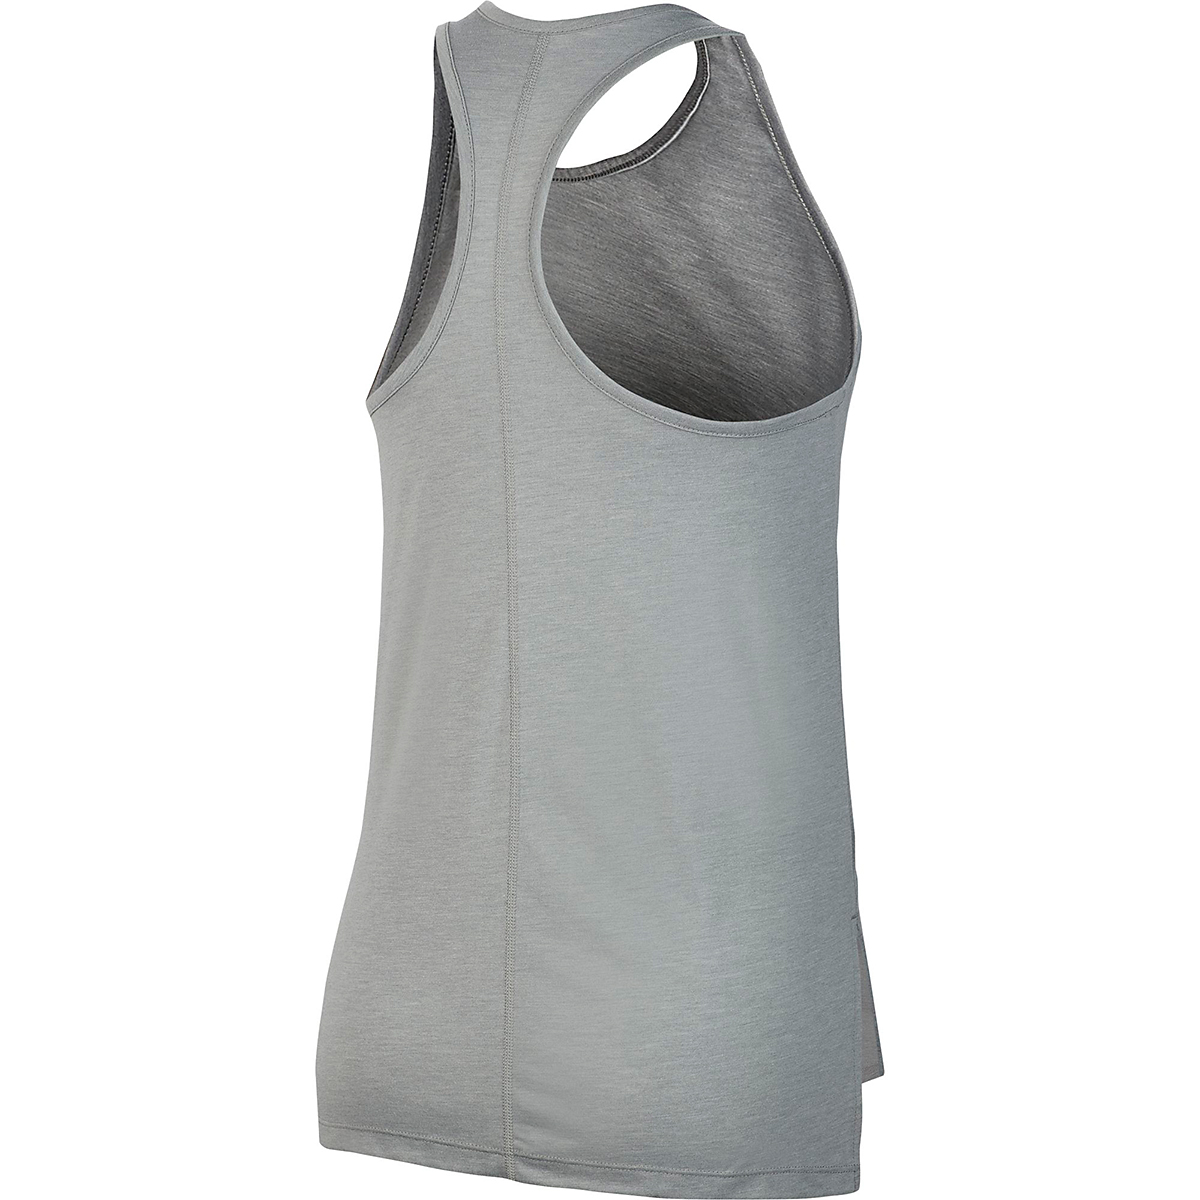 Women's Nike Yoga Layer Tank - Color: Particle Grey/Heather/Platinim Tint - Size: XS, Particle Grey/Heather/Platinim Tint, large, image 4